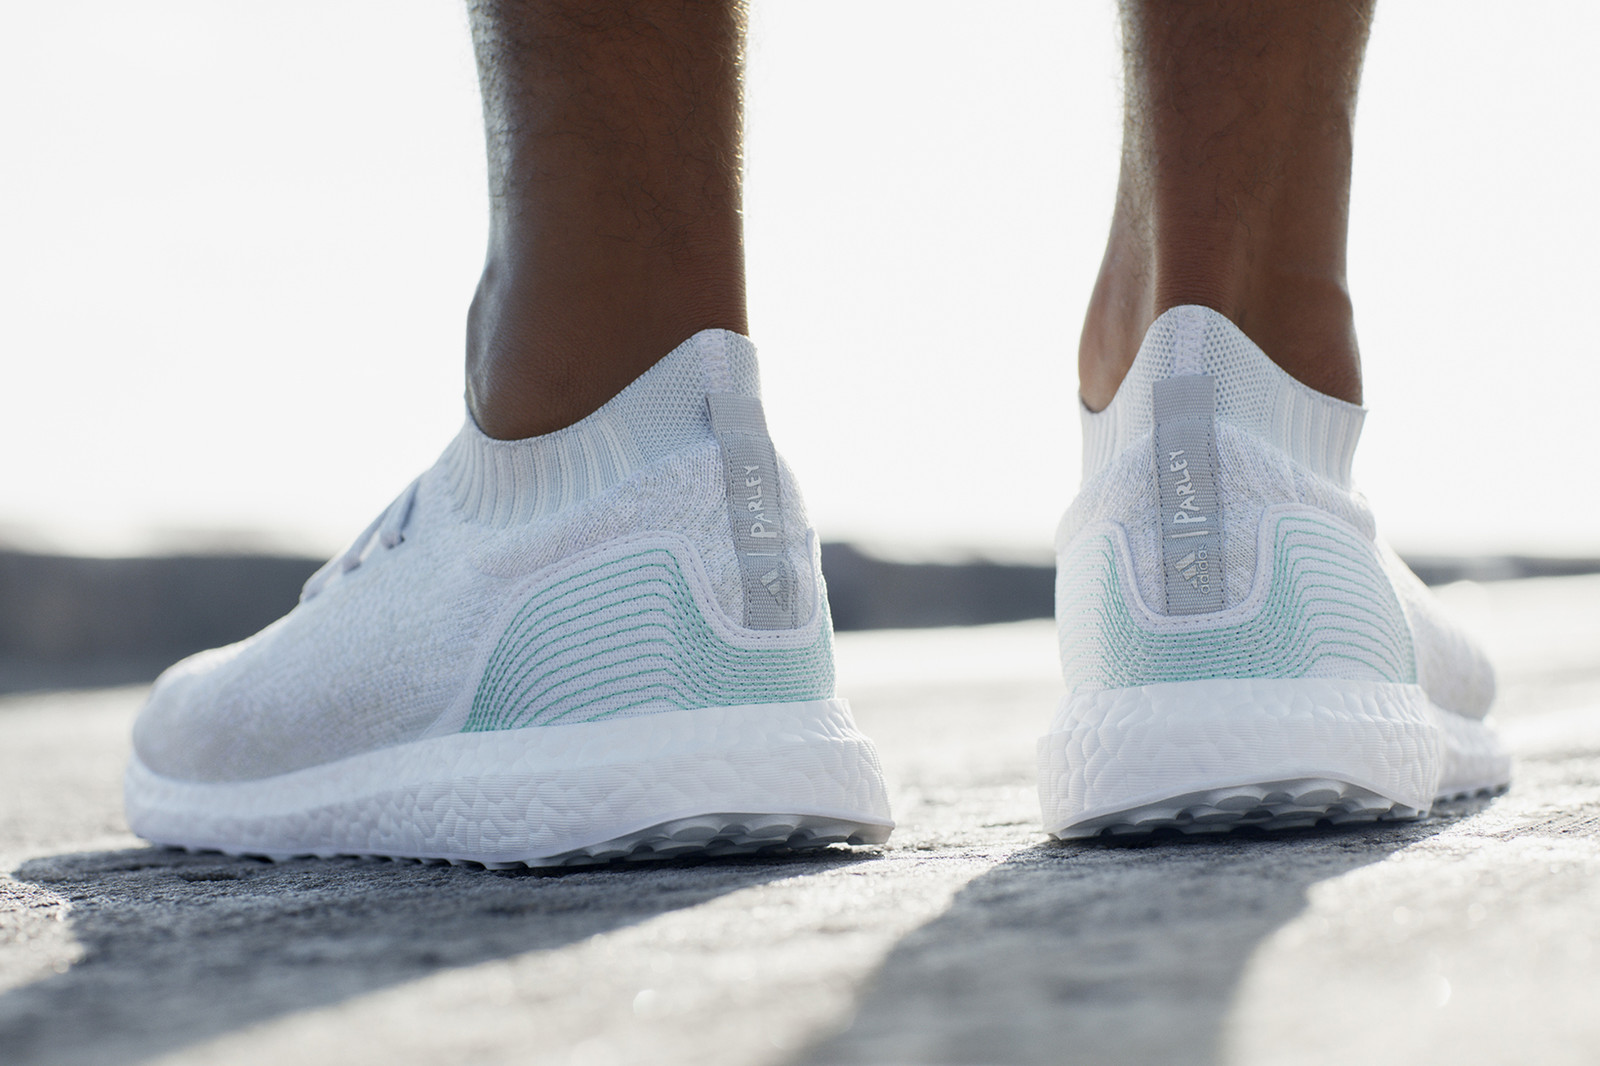 adidas-parley-for-the-oceans-ultra-boost-uncaged-football-jerseys-000